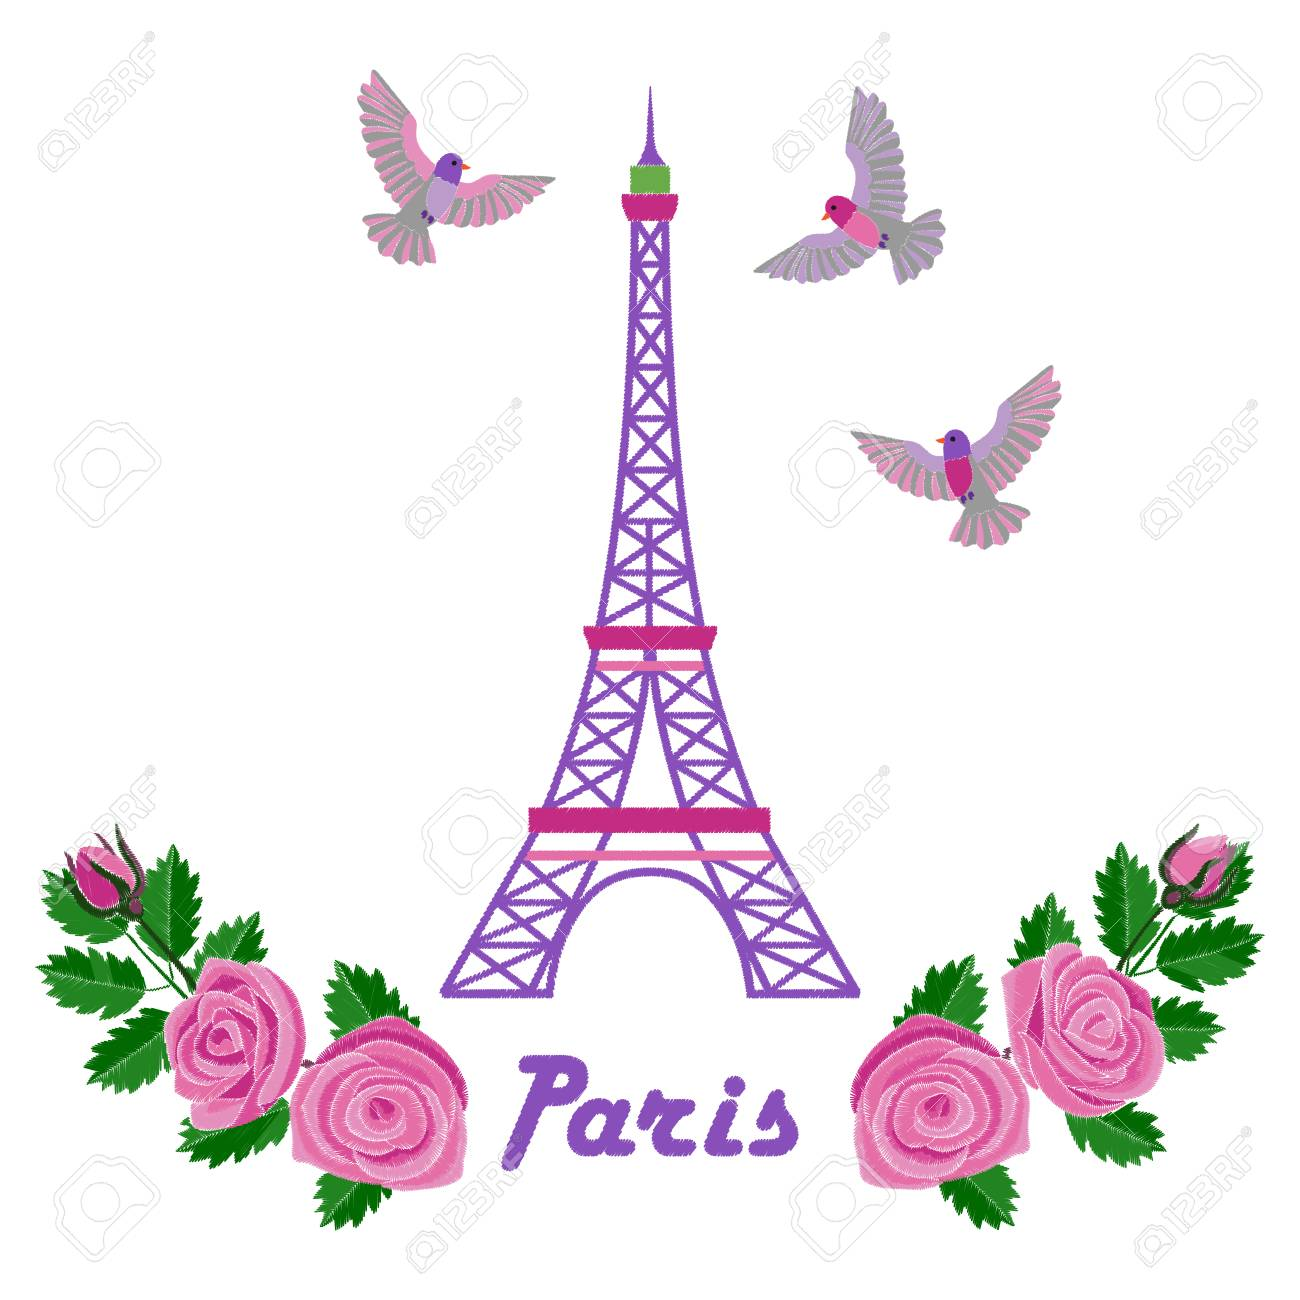 Paris Embroidery Romantic Pattern With Eiffel Tower On White